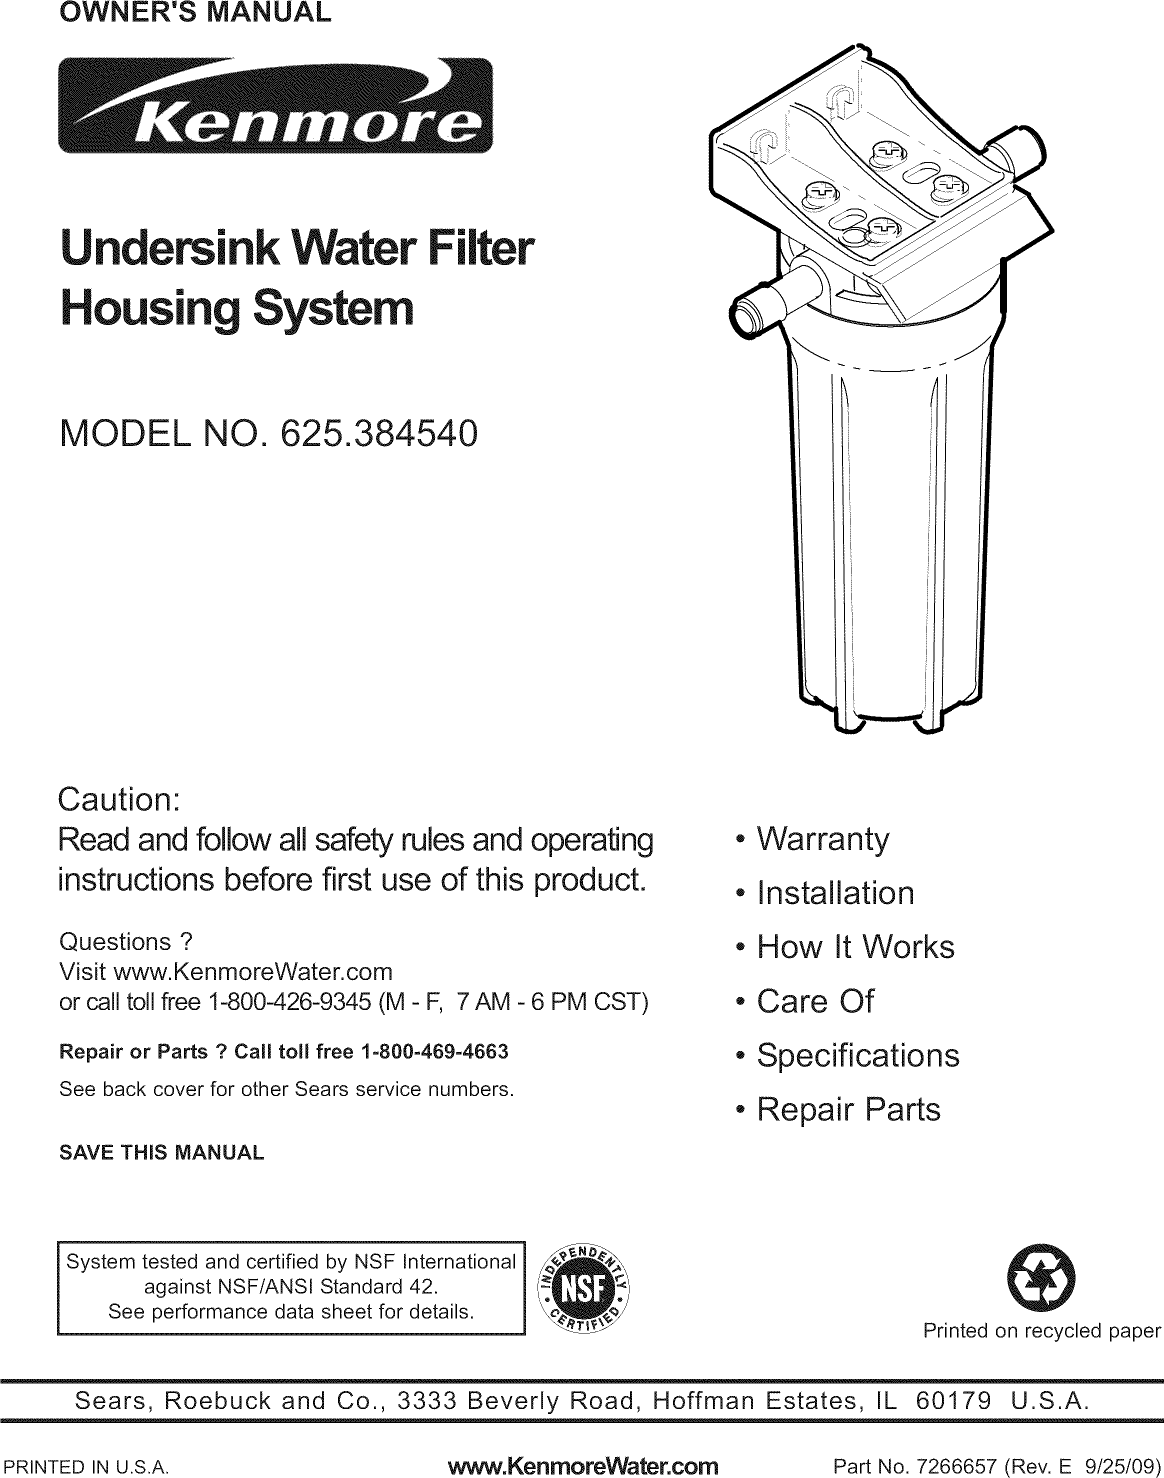 Kenmore 625384540 User Manual WATER FILTER Manuals And Guides L0911191